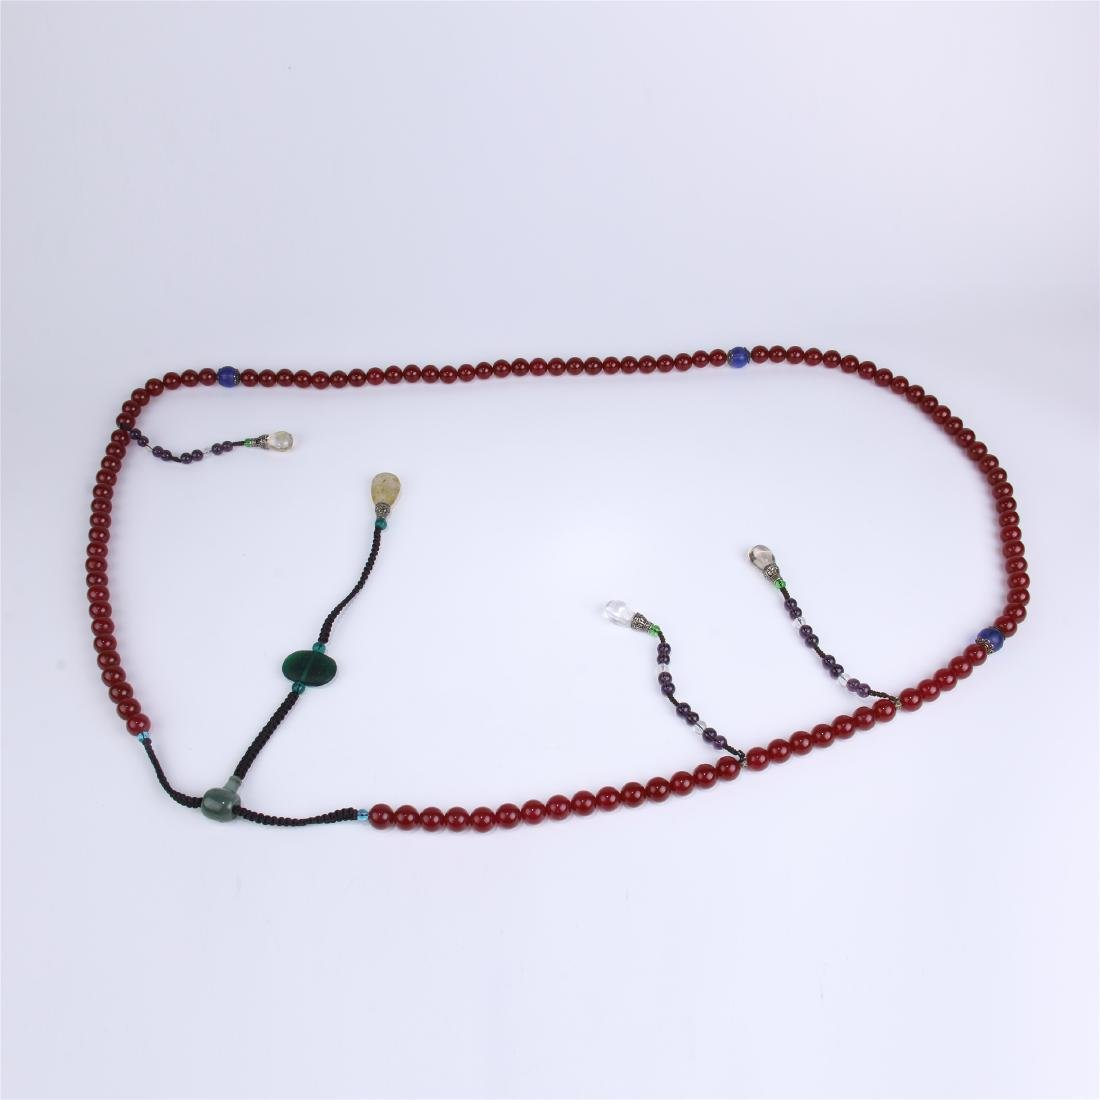 CHINESE RED AGATE BEADS CHAOZHU COURT NECKLACE